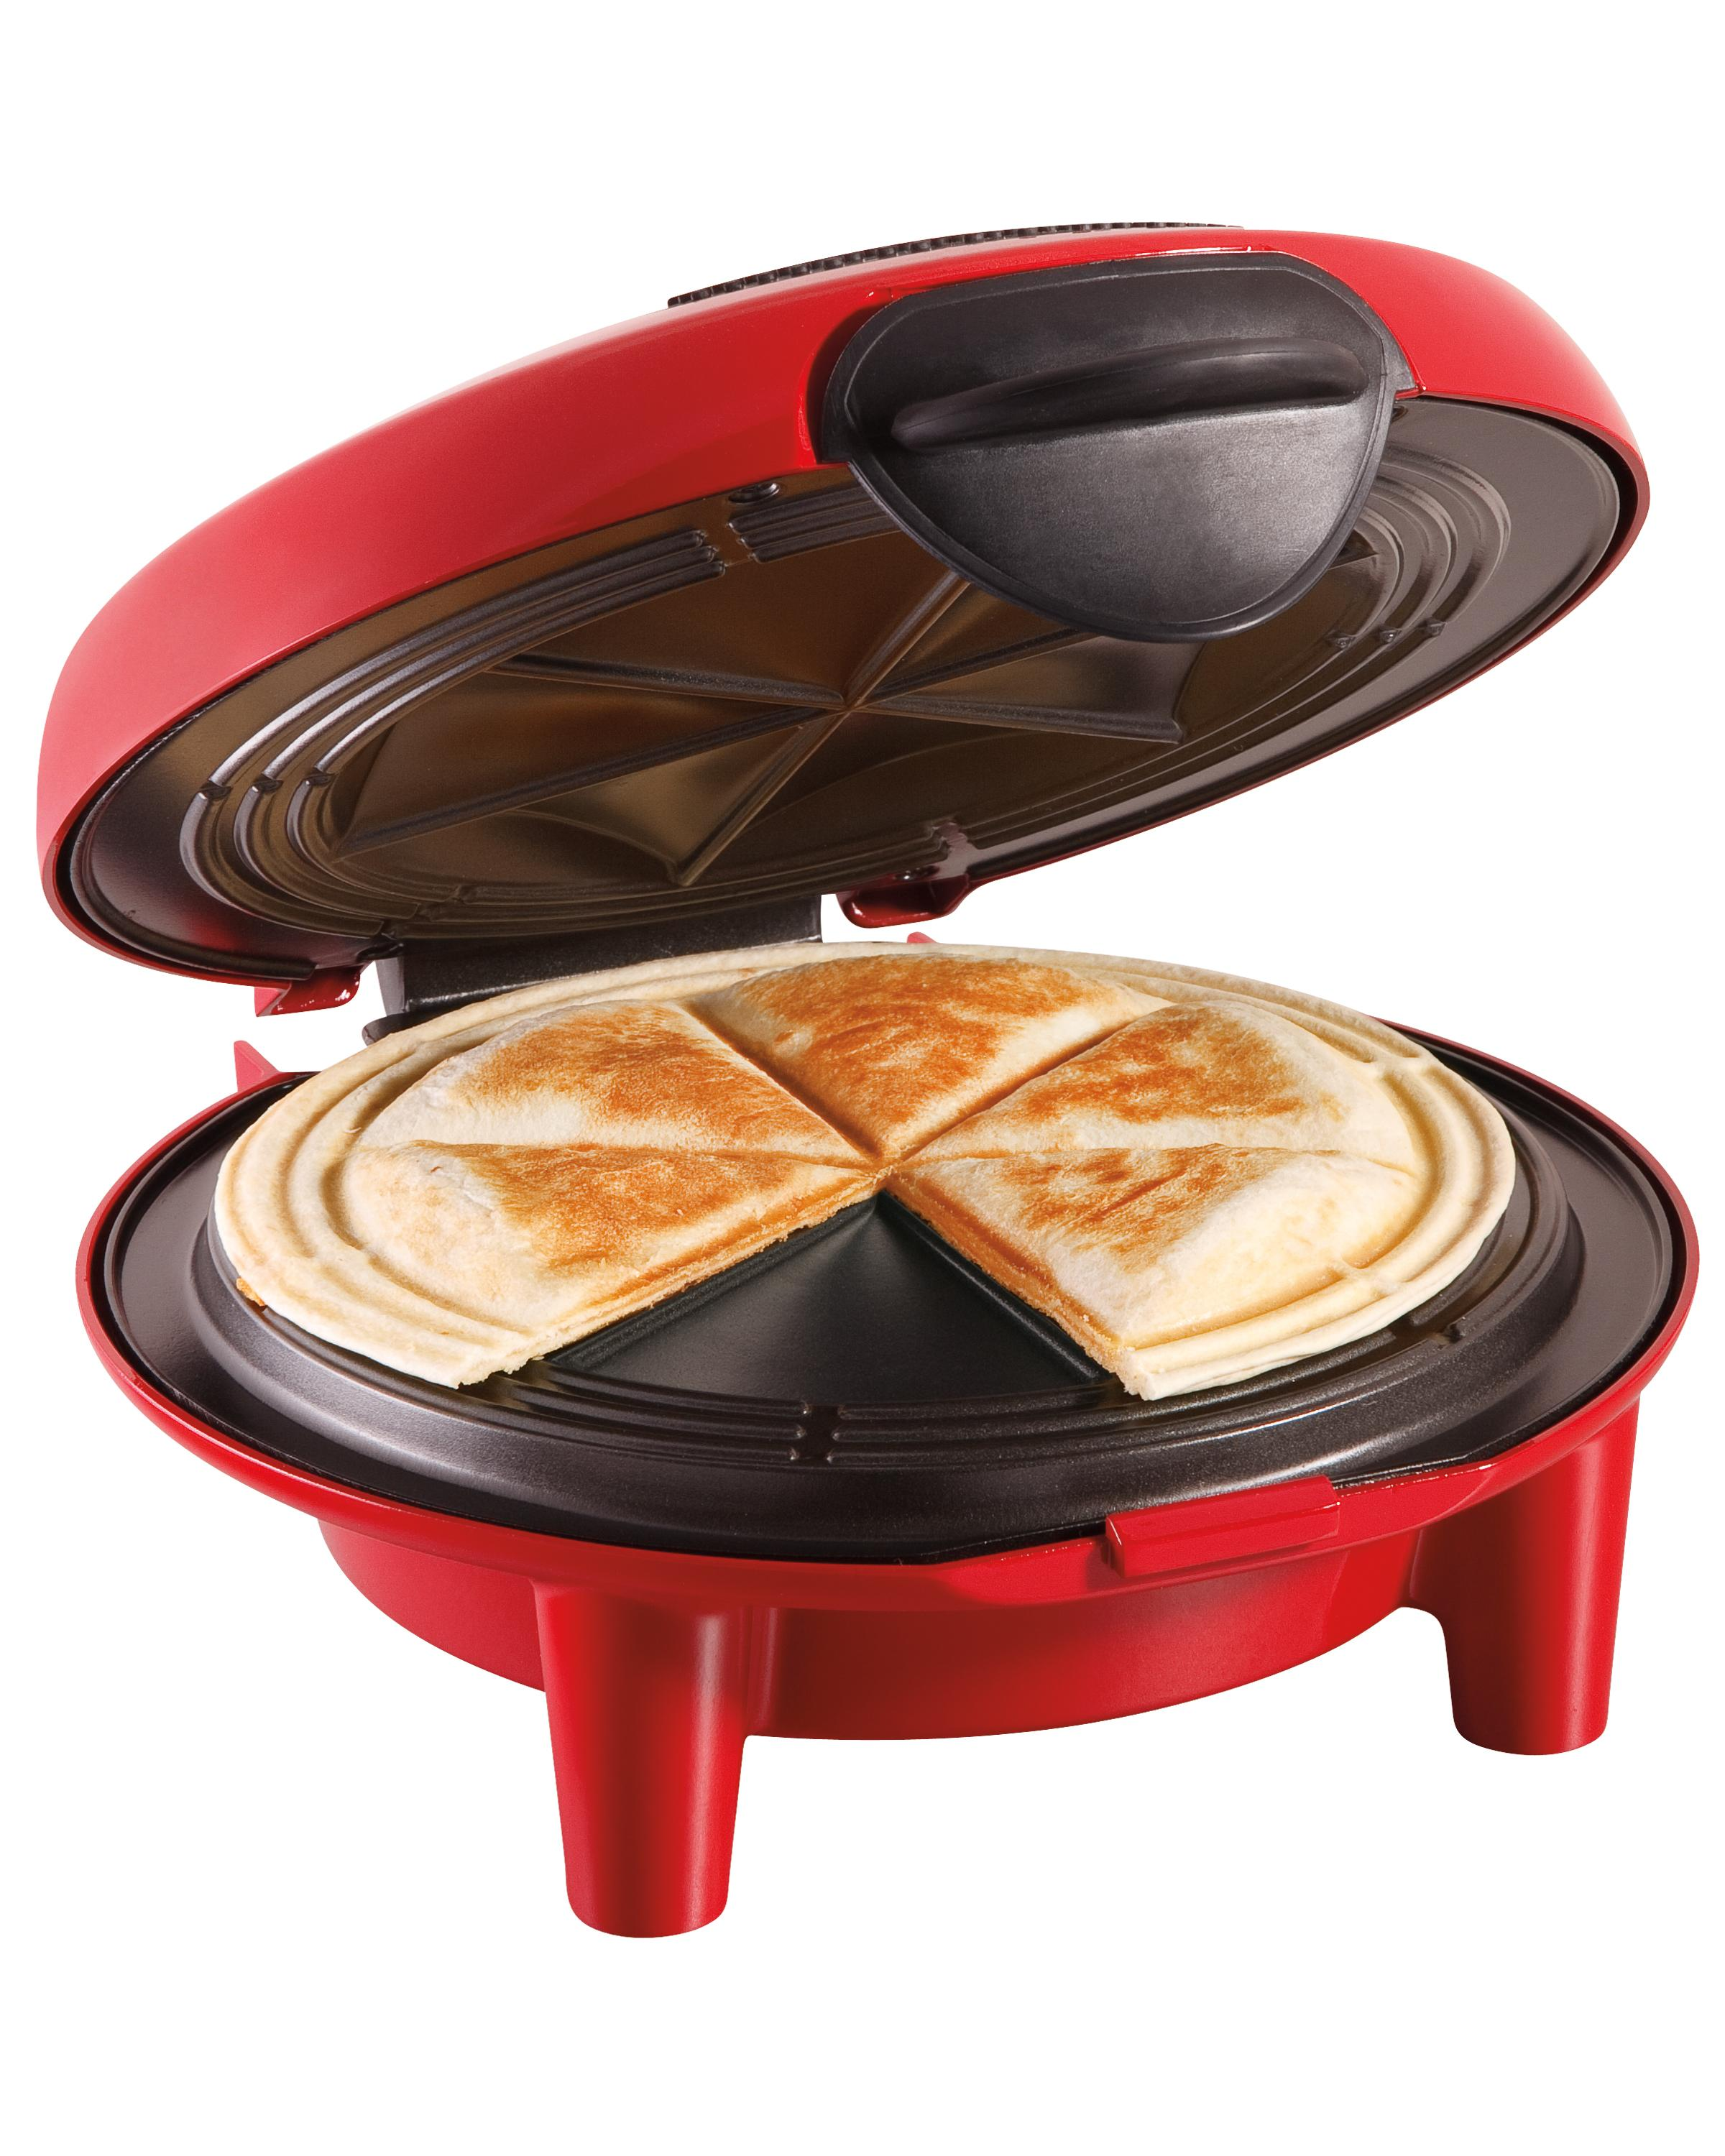 hamilton beach 25409 quesadilla maker kitchen